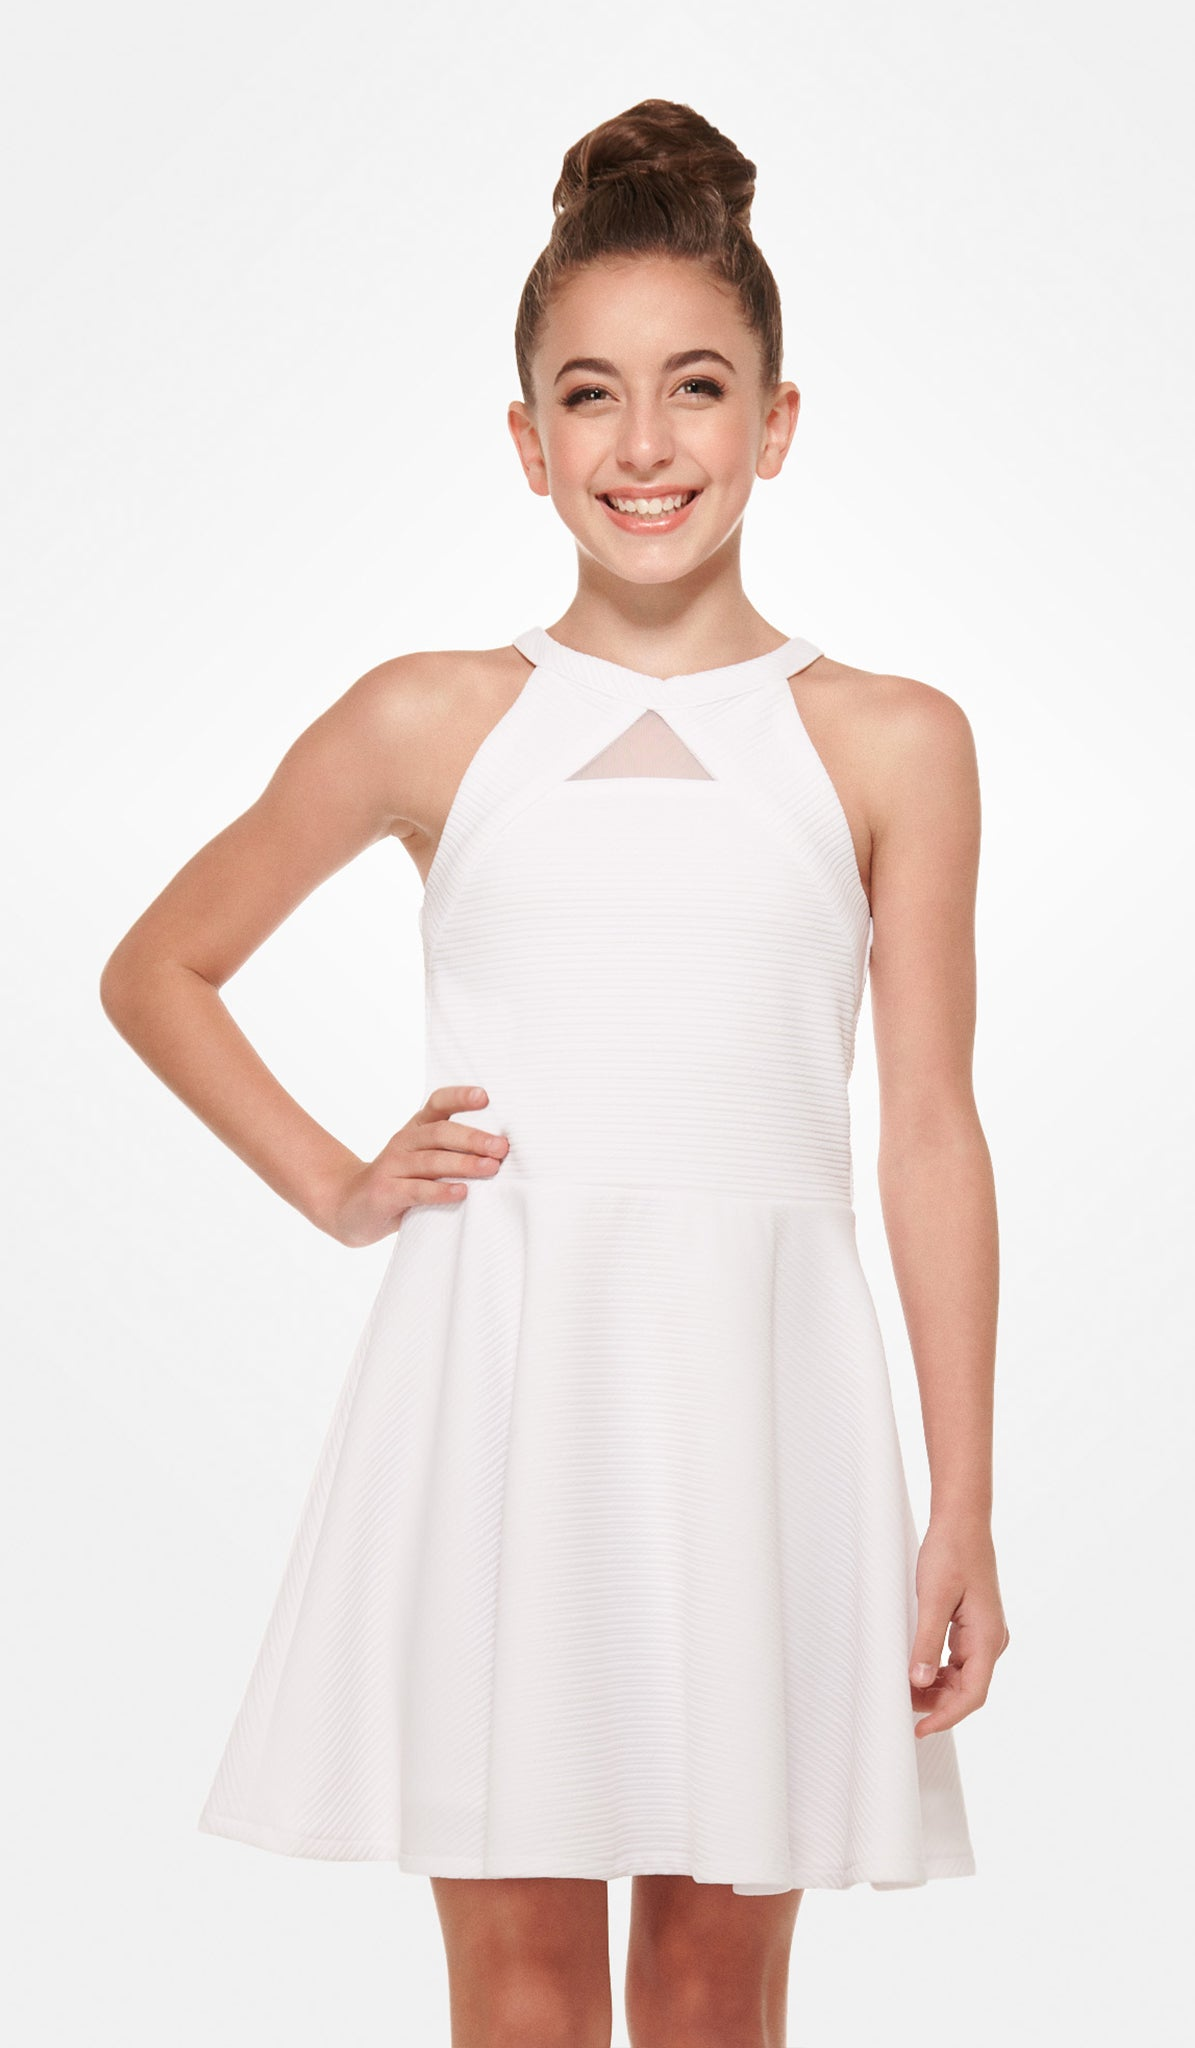 THE MARLEY DRESS (JUNIORS) - Sallymiller.com - [variant title] - | Event & Party Dresses for Tween Girls & Juniors | Weddings Dresses, Bat Mitzvah Dresses, Sweet Sixteen Dresses, Graduation Dresses, Birthday Party Dresses, Bar Mitzvah Dresses, Cotillion Dresses